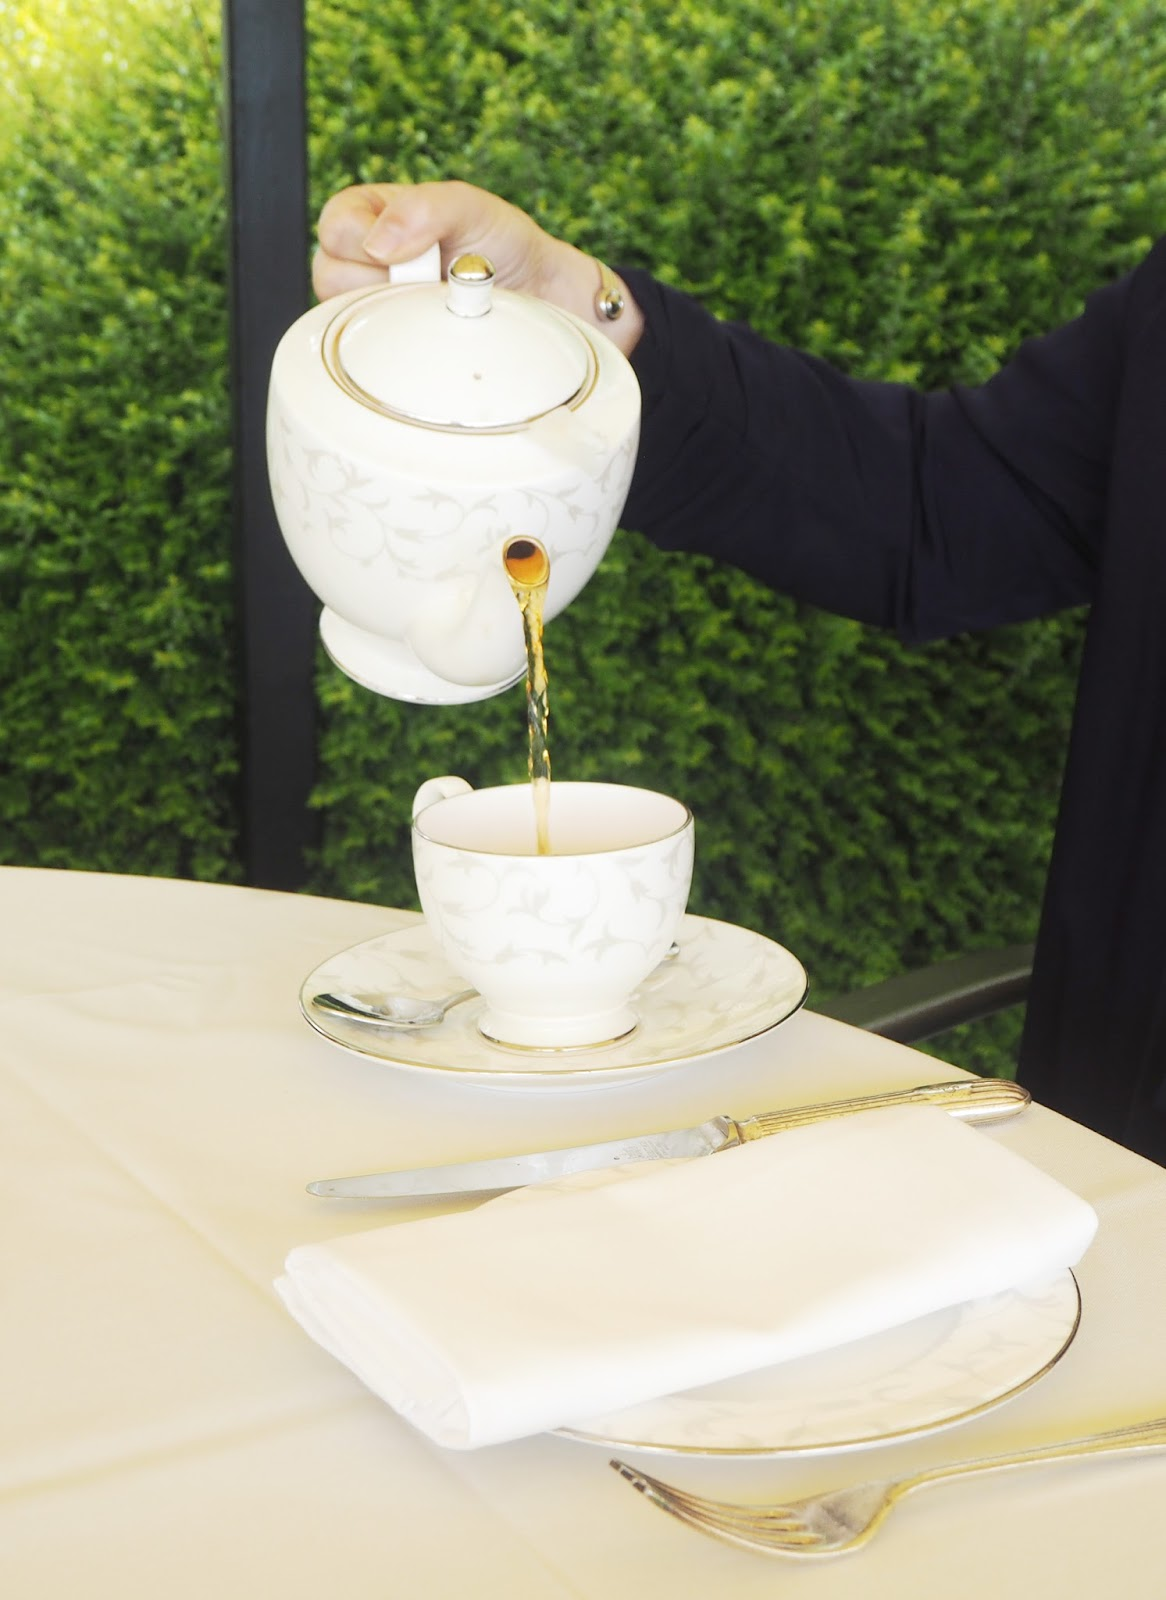 Afternoon tea review at South Lodge in Horsham - afternoon tea